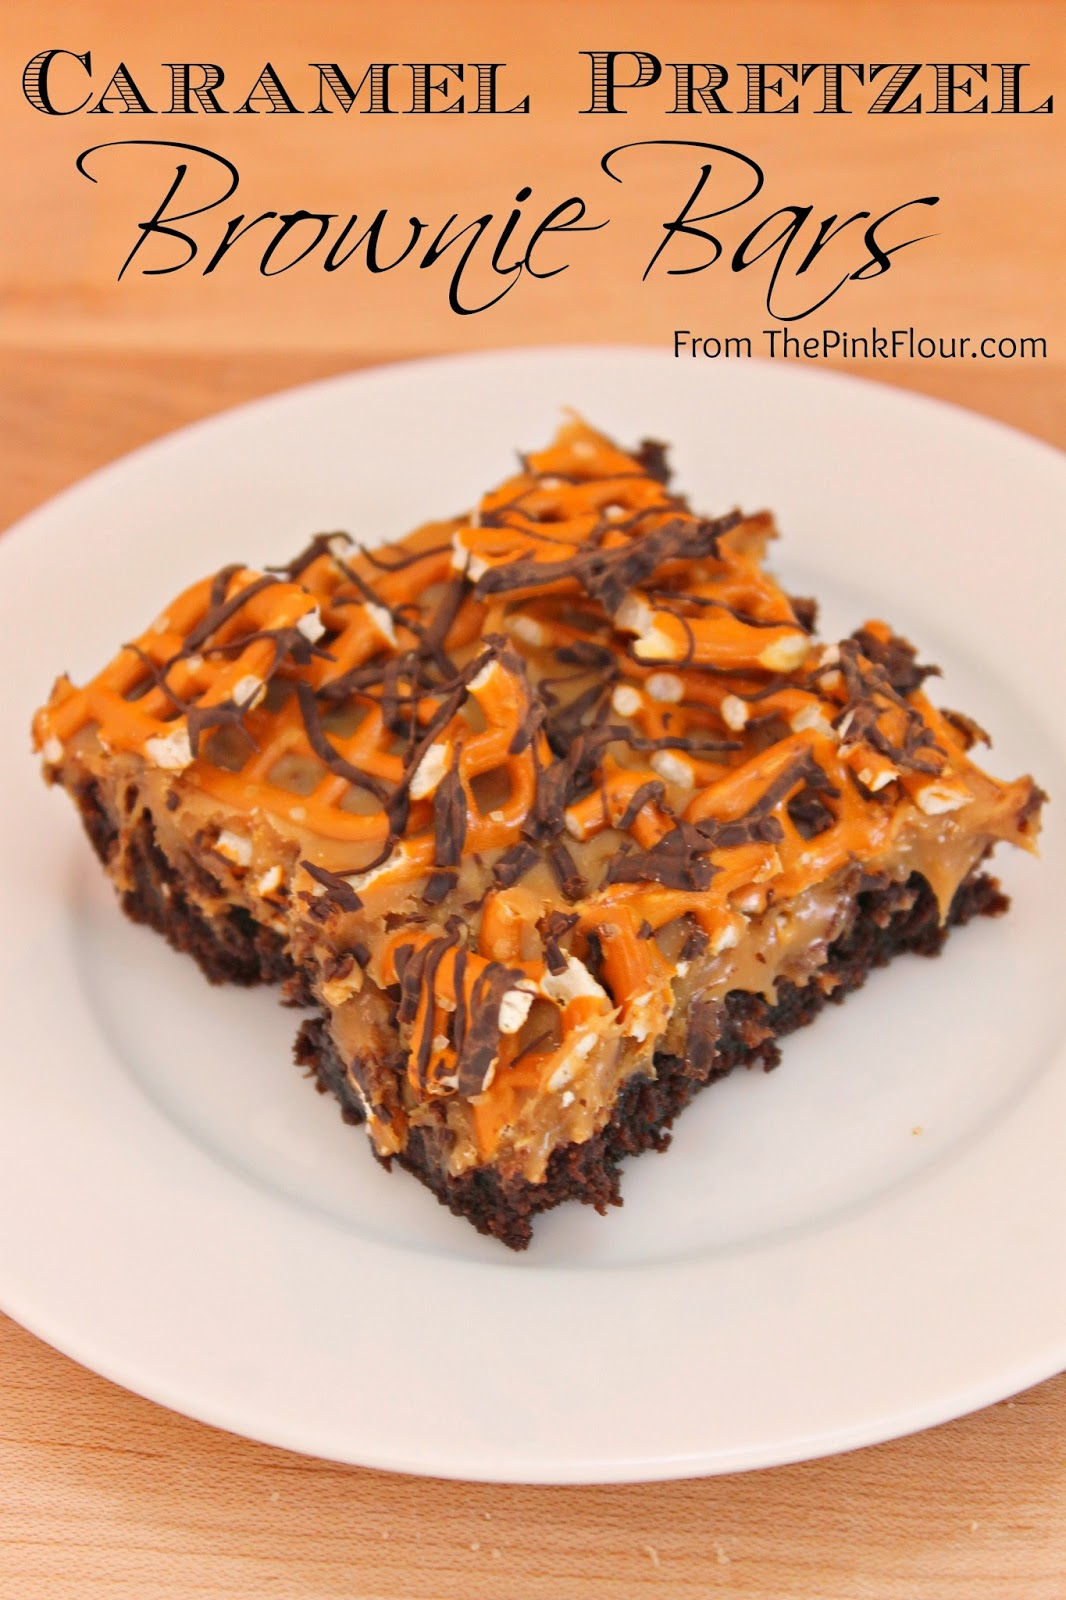 Caramel Pretzel Brownie Bars - gooey caramel and salty pretzels make for the perfect salty & sweet treat